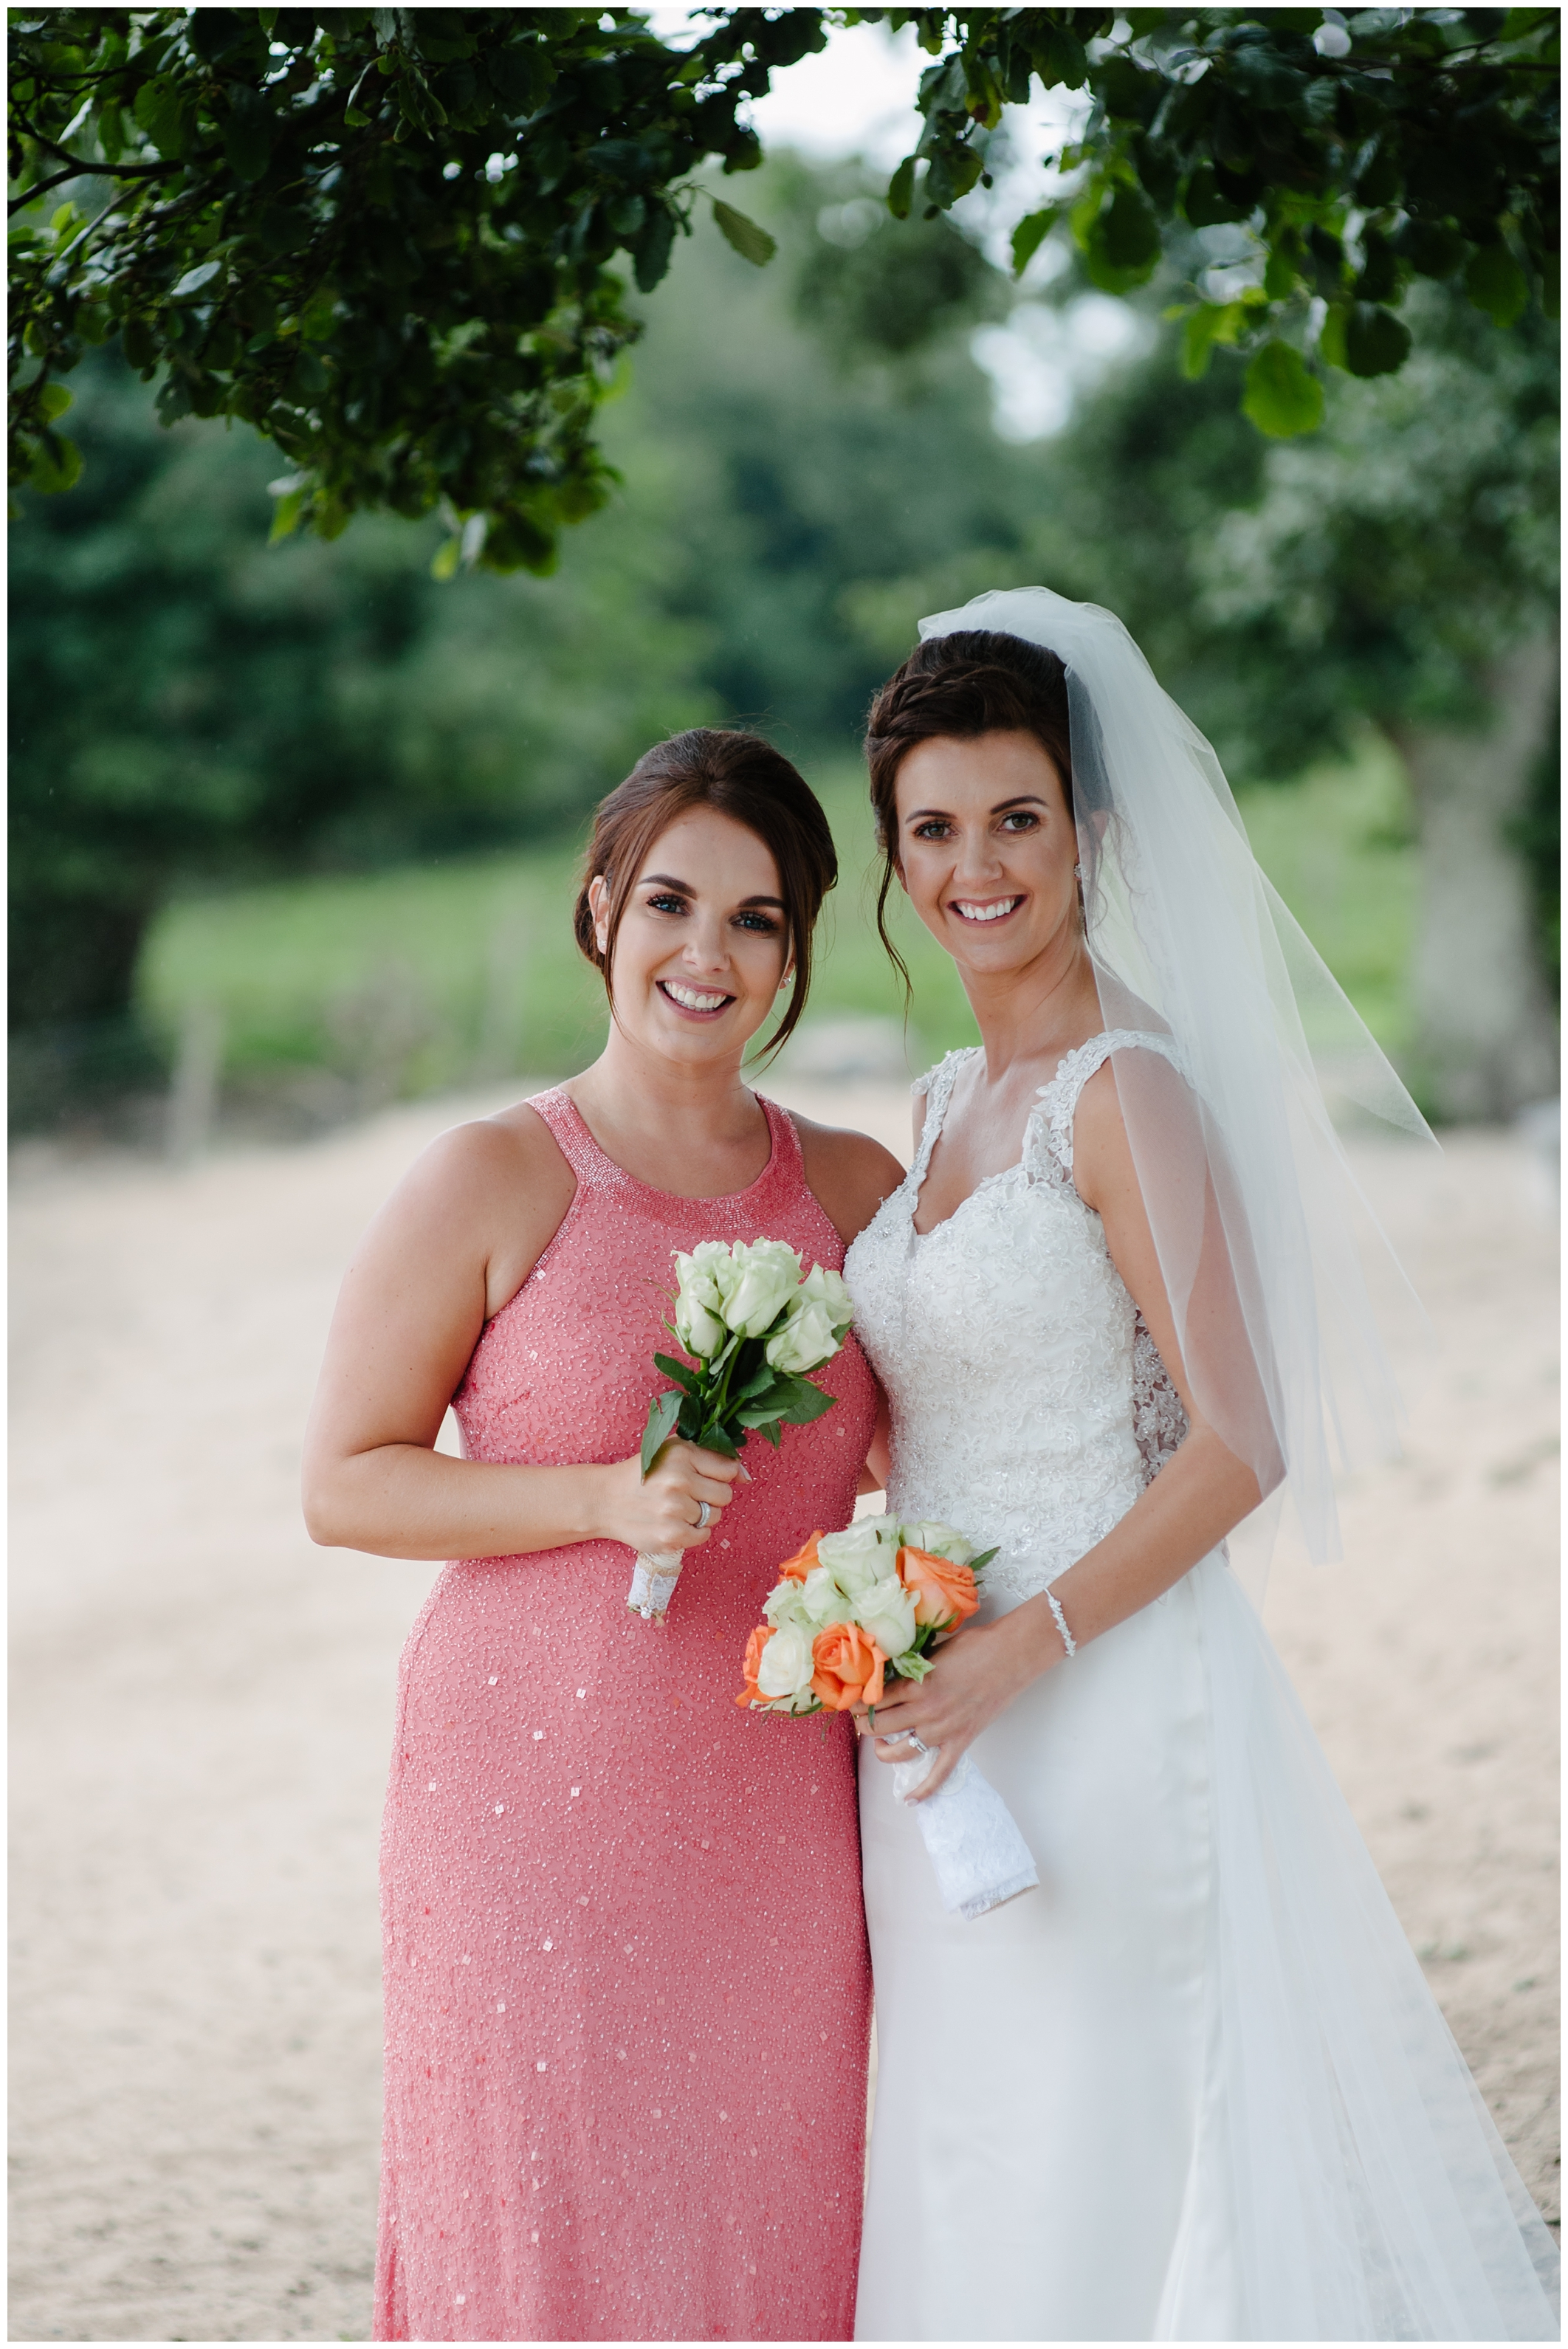 Lynsey_Andy_Rossharbour_Fermanagh_wedding_jude_browne_photography_0120.jpg